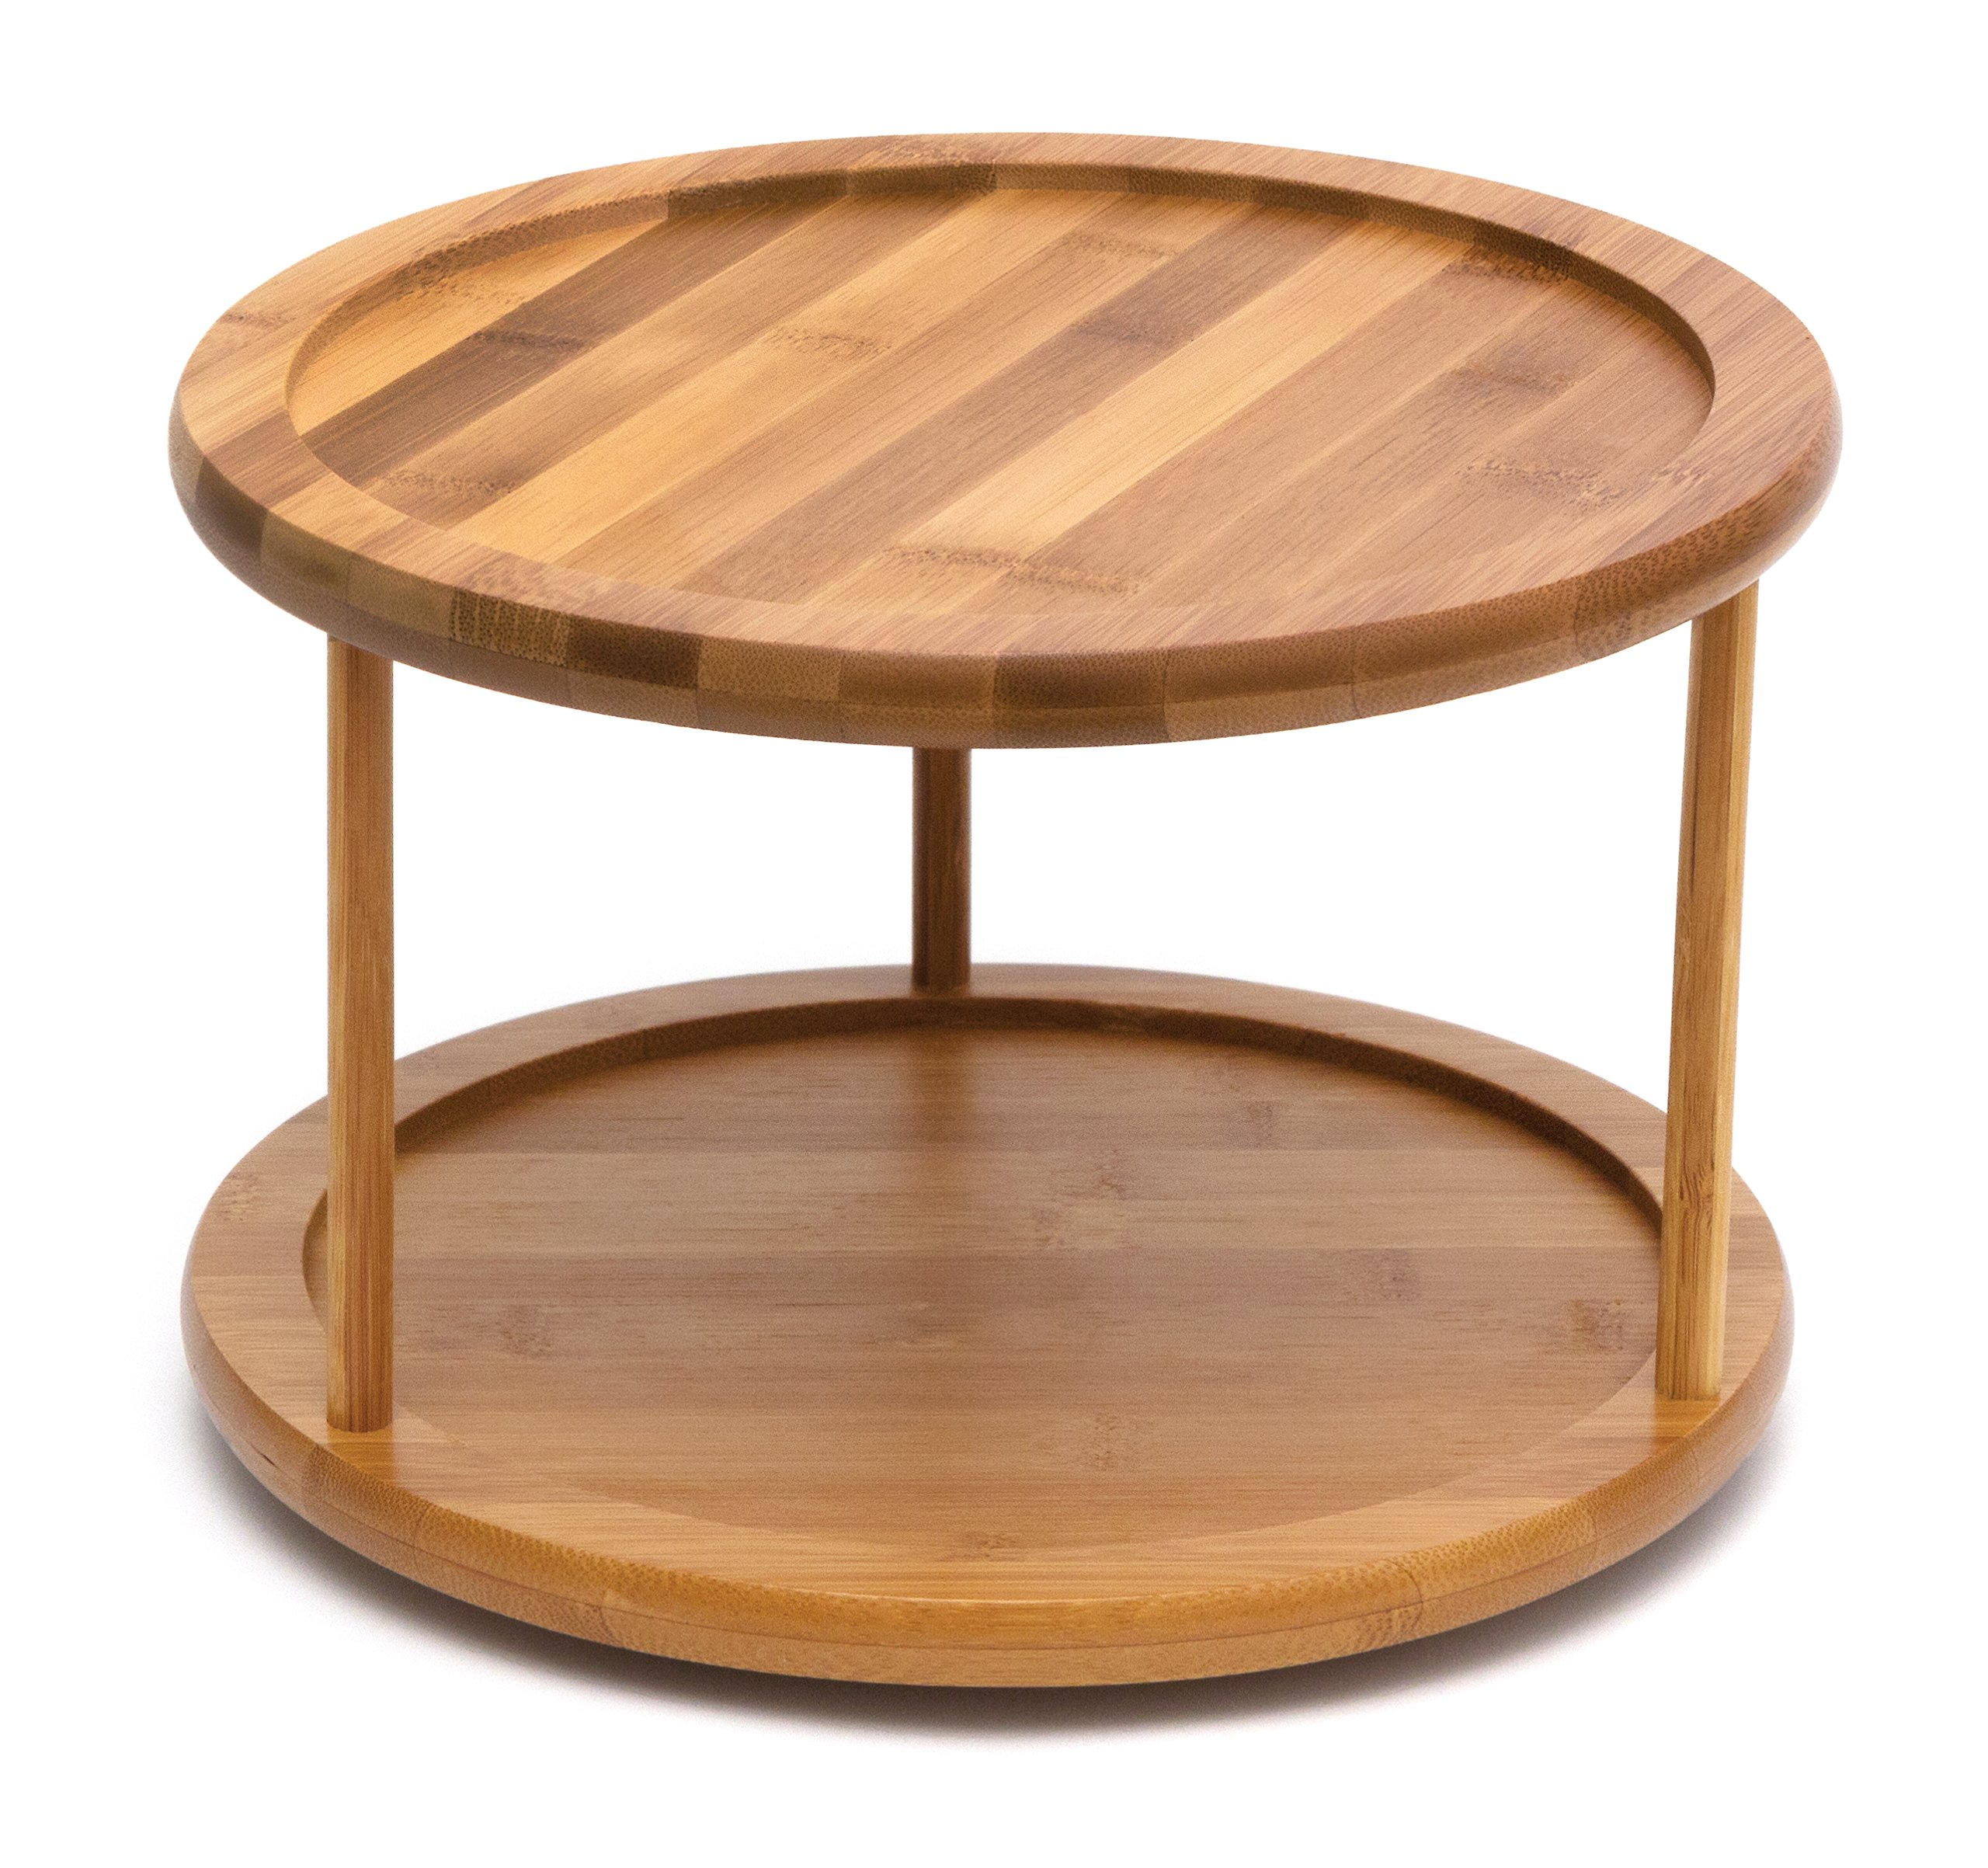 Lipper International 8302 Bamboo Wood 2-Tier 10'' Kitchen Turntable